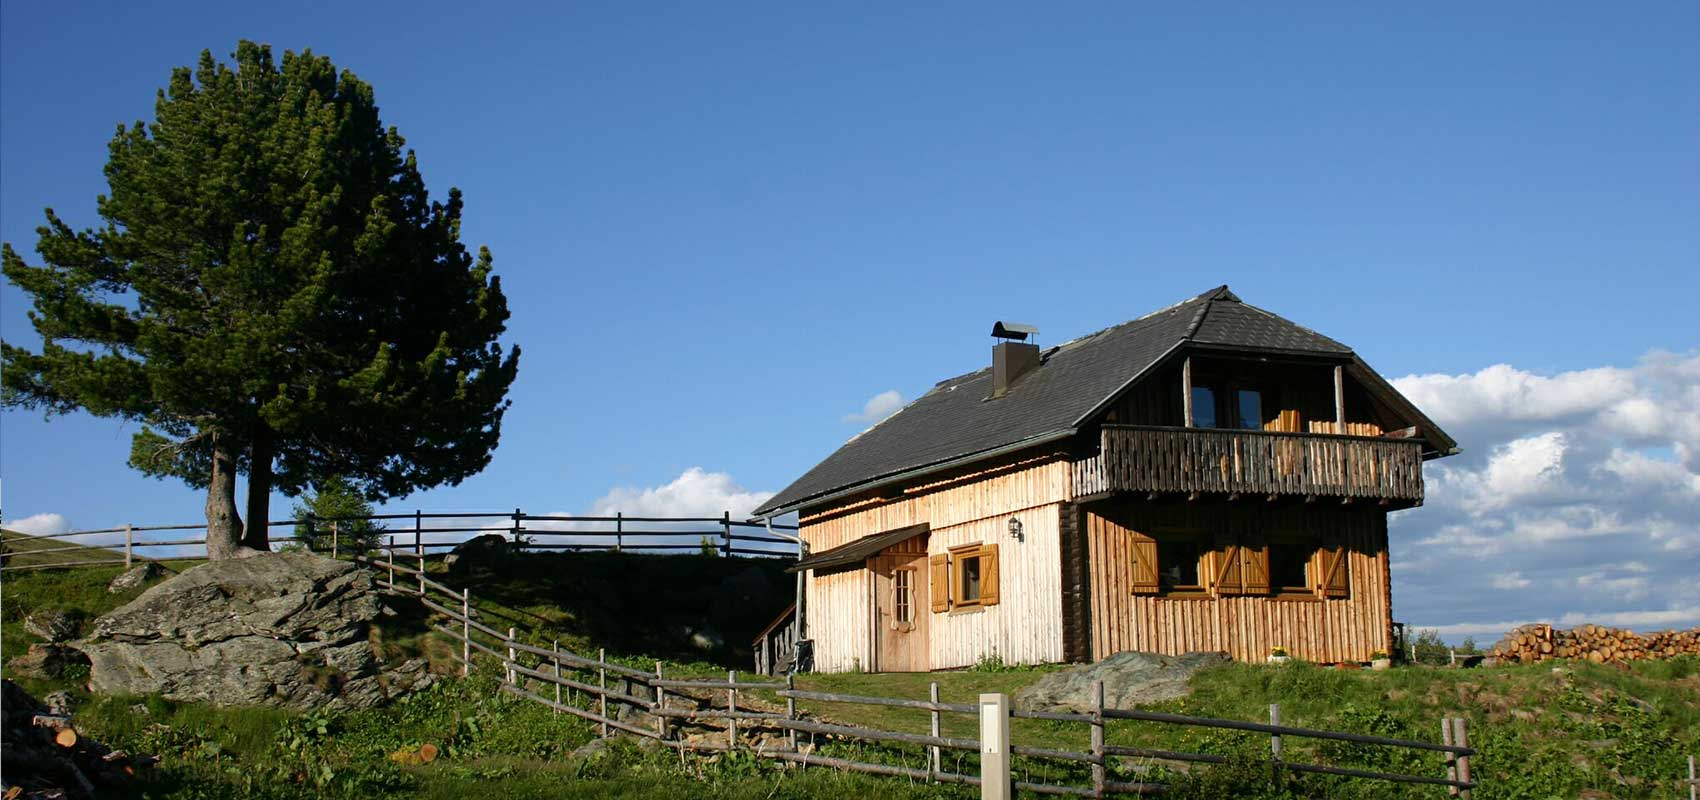 Sommer_Almhaus_A